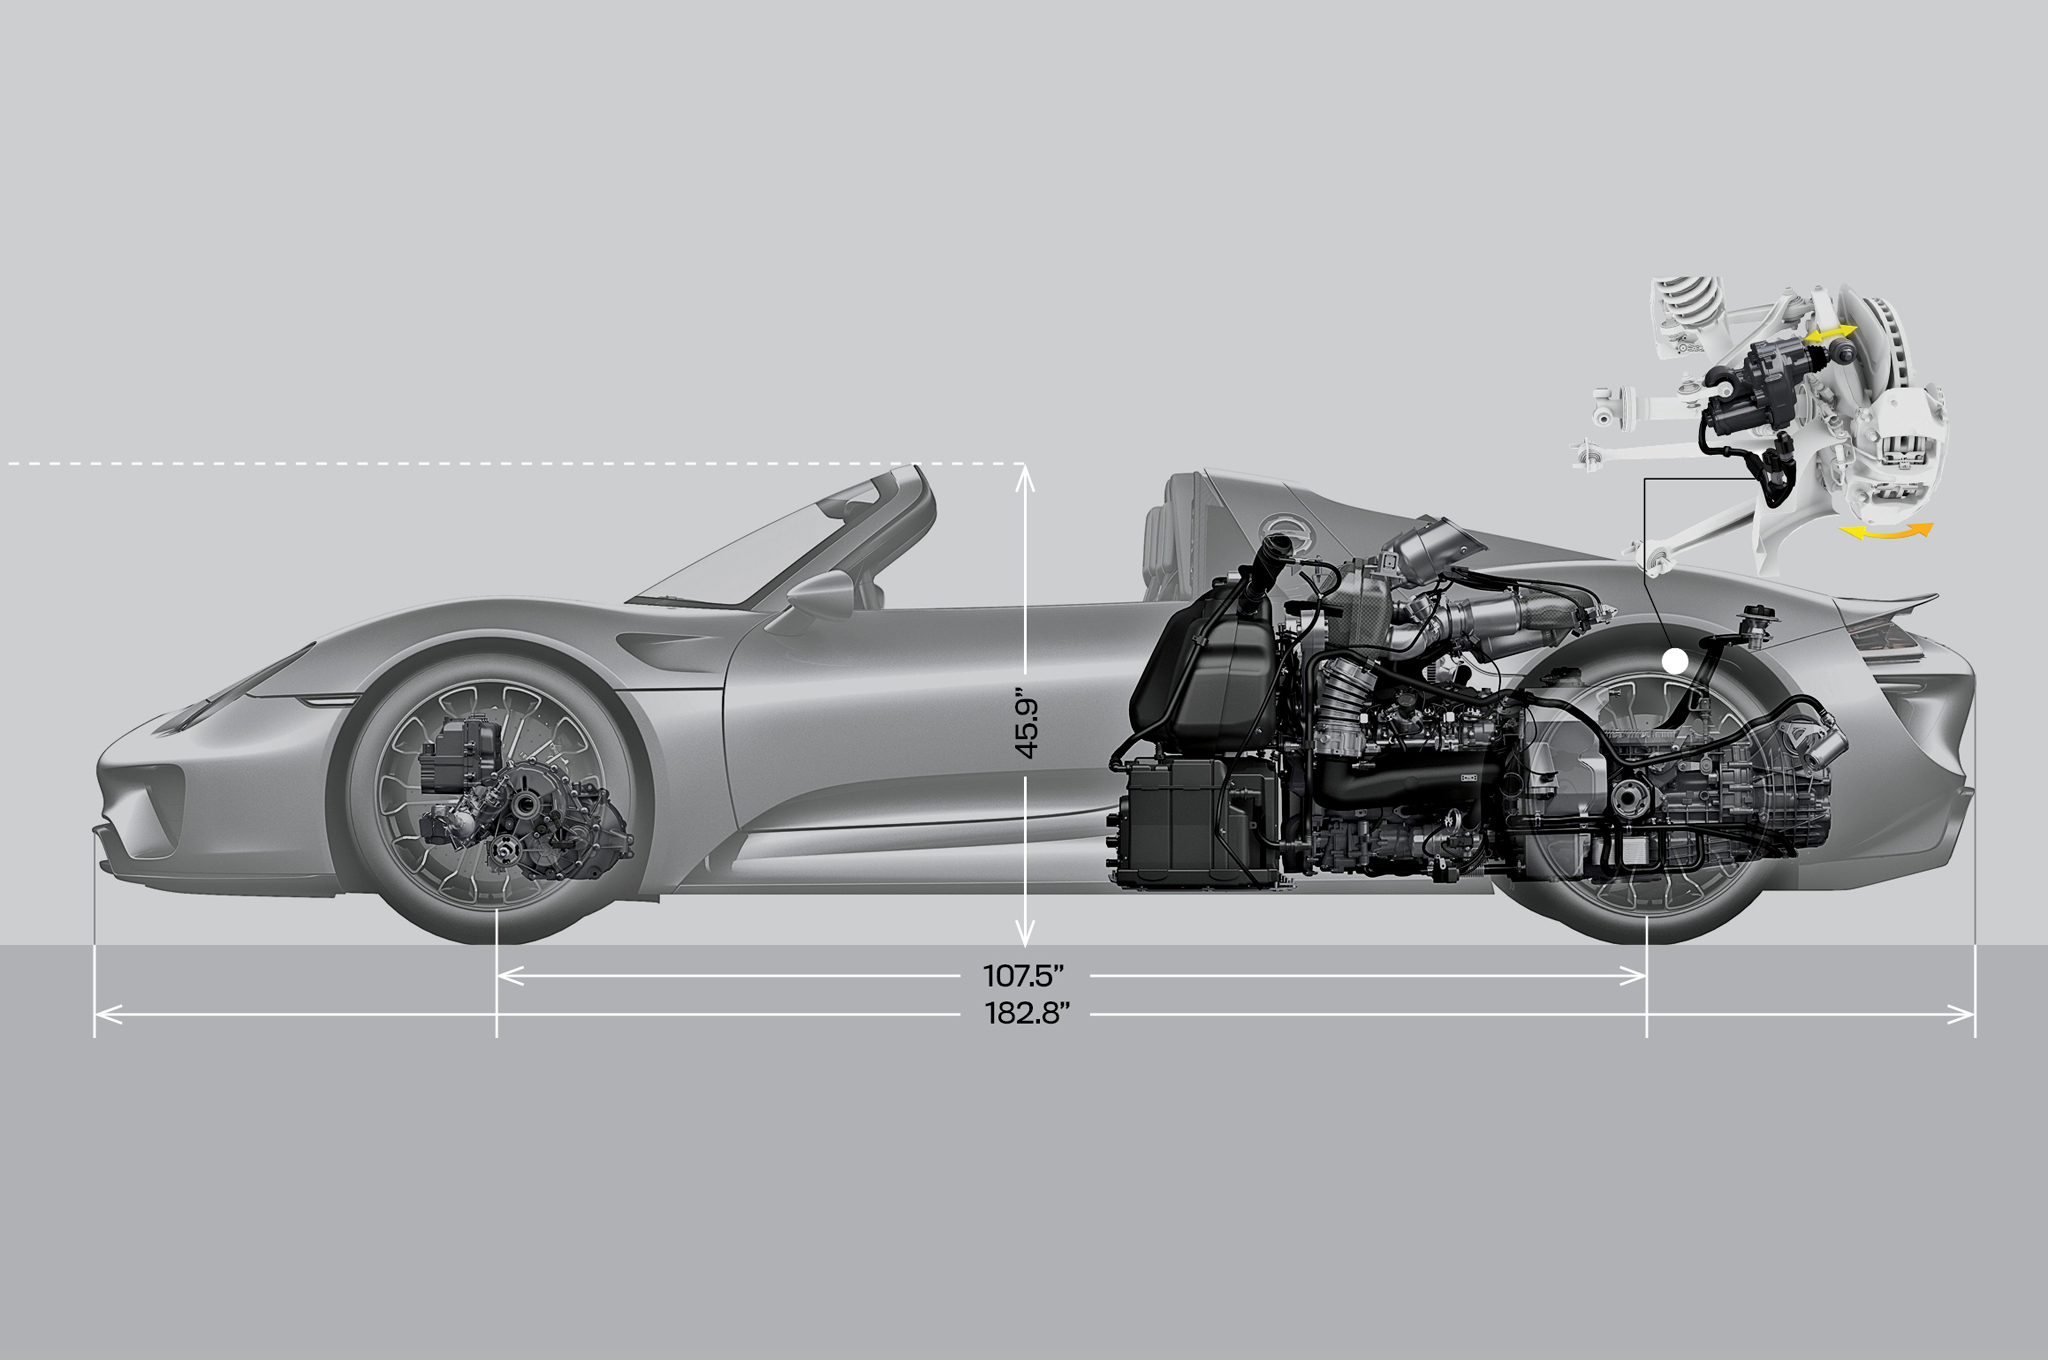 Hybrid Engine Diagram Wiring Library Blueprint The Hypercar Motor Trend Rh Motortrend Com How A Car Works